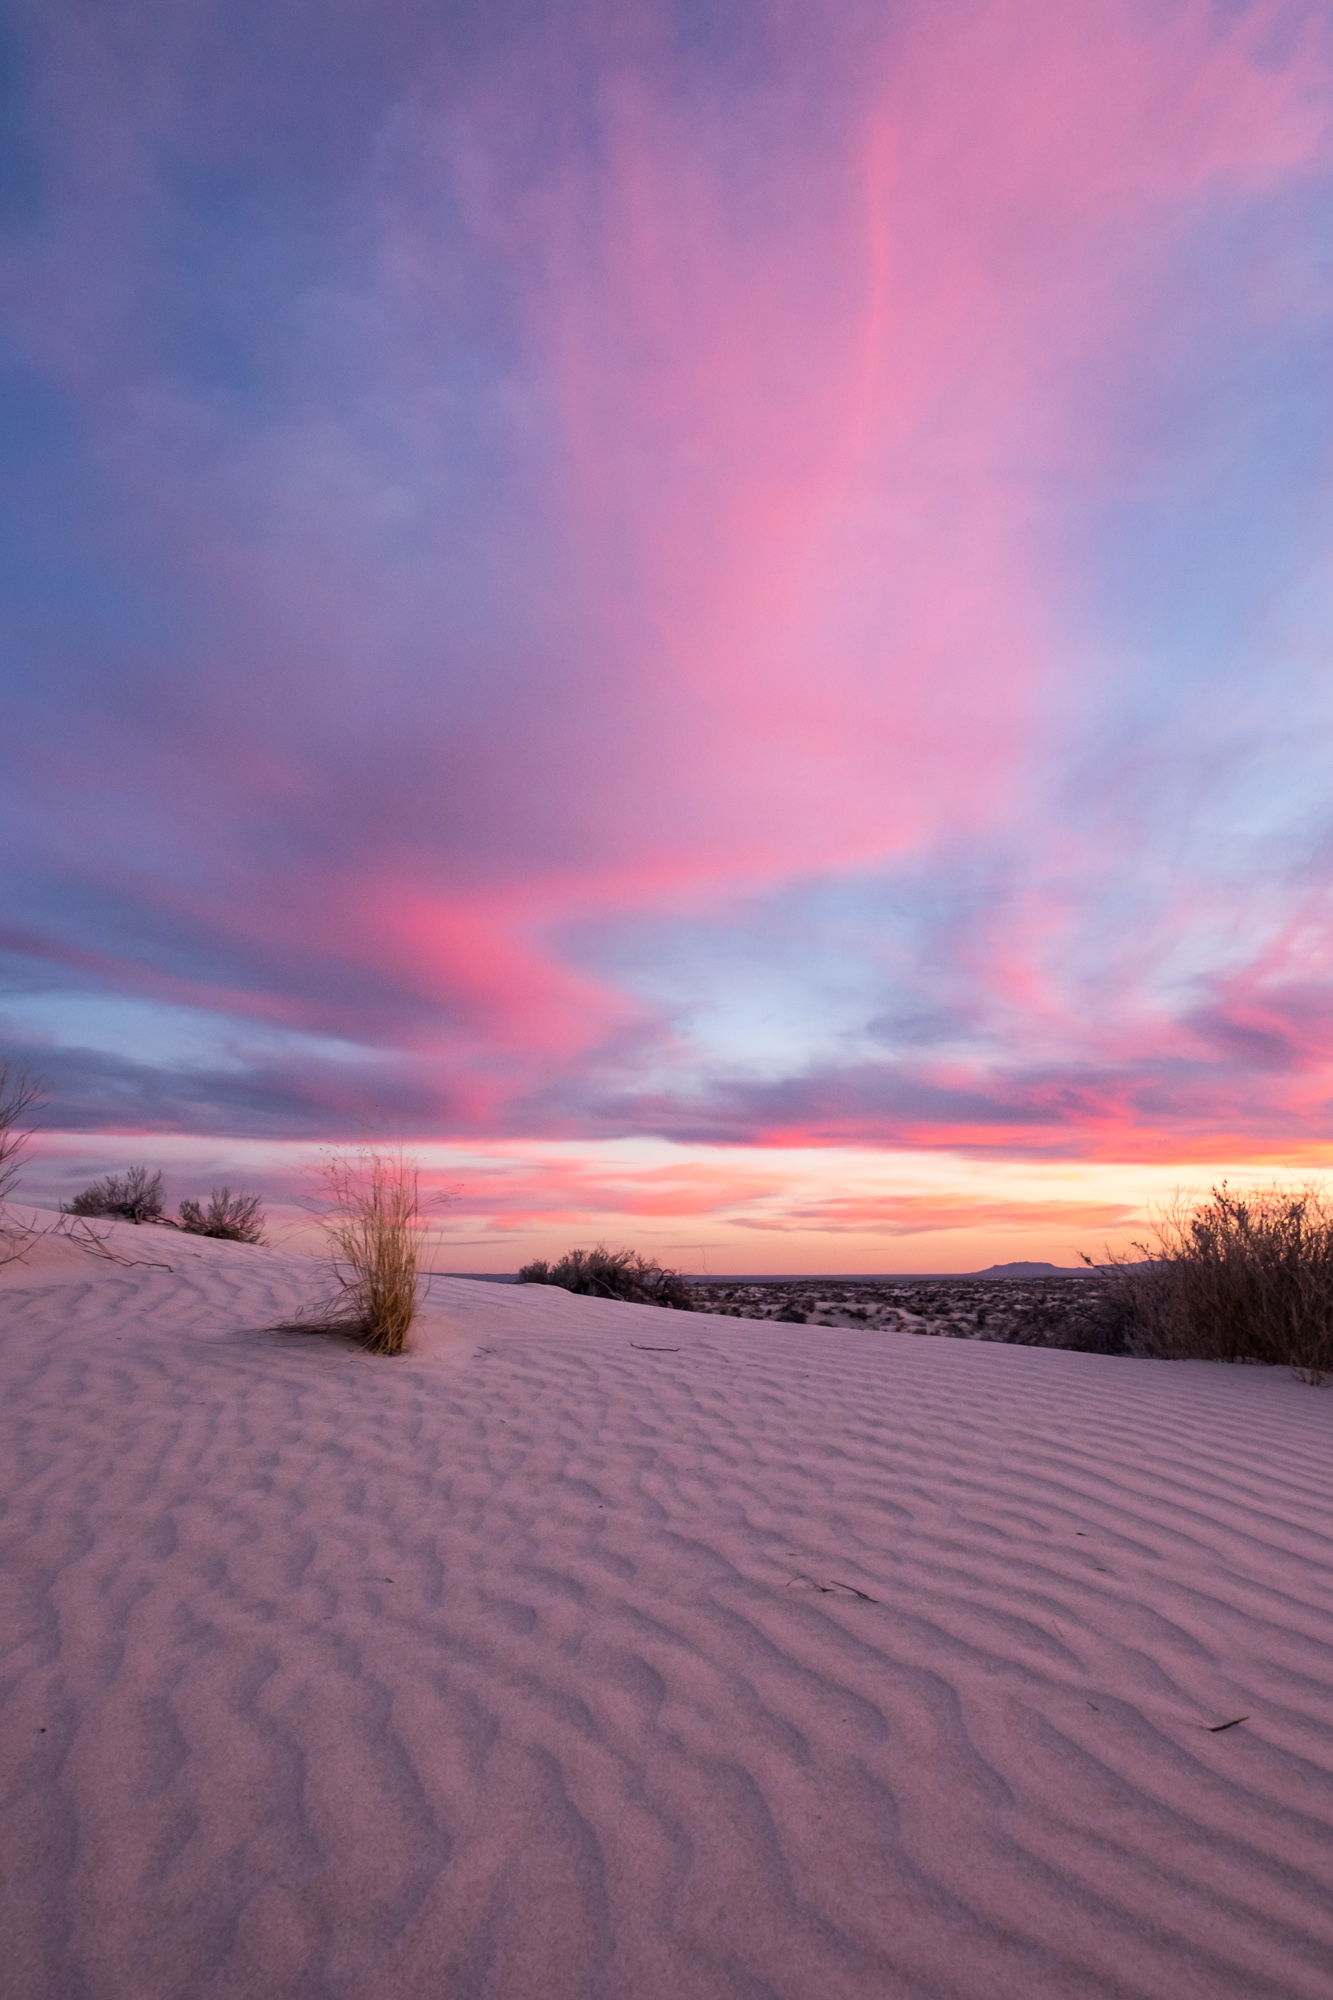 Last sunset shot of the Salt Basin sand dunes at Guadalupe Mountains National Park.